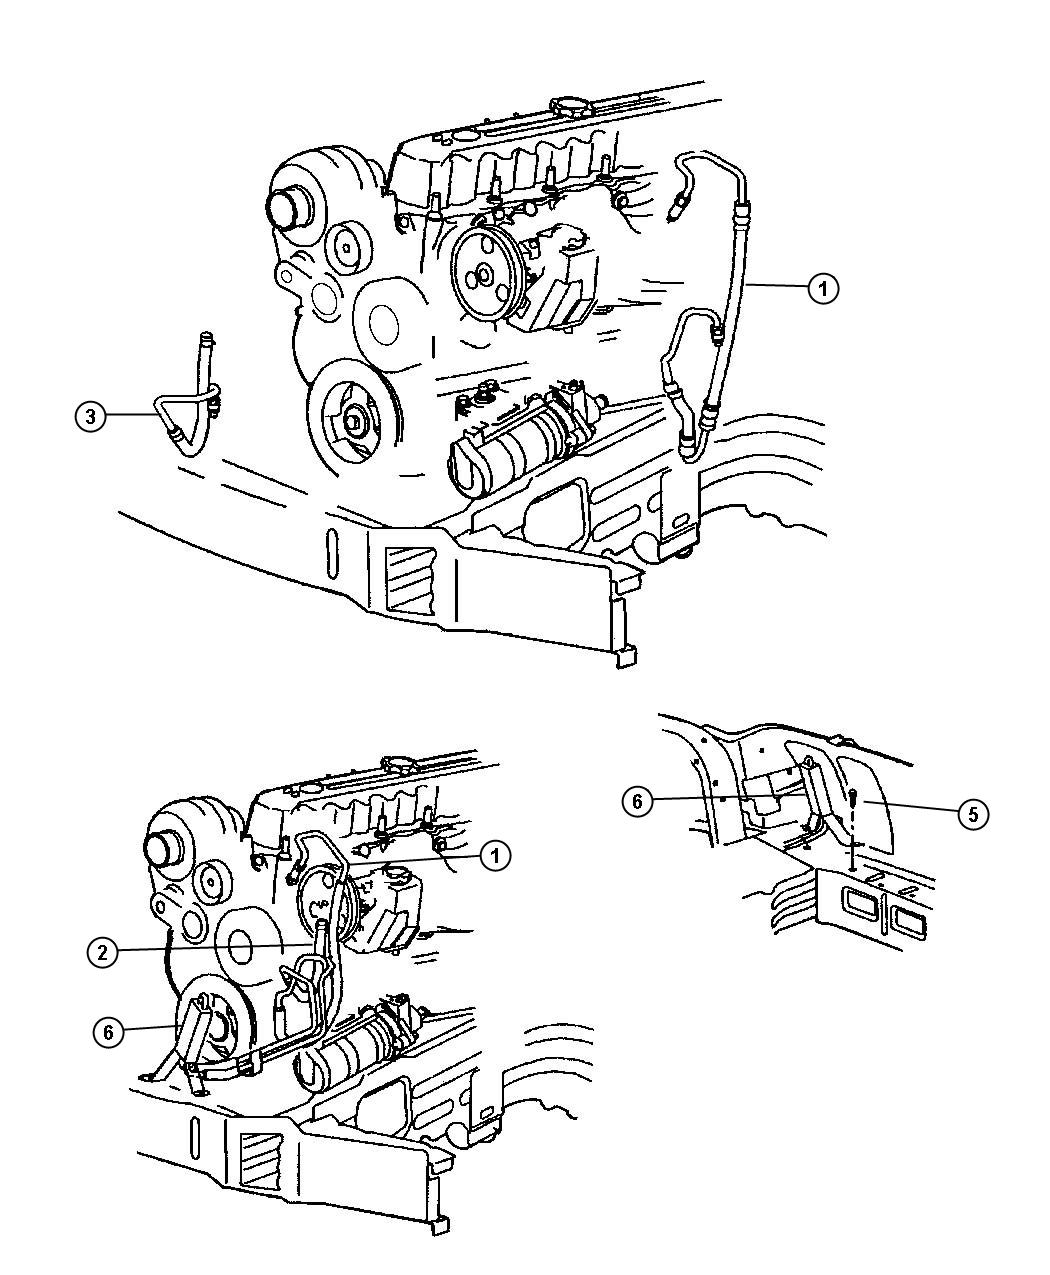 2004 Dodge Caravan Engine Hose Diagram